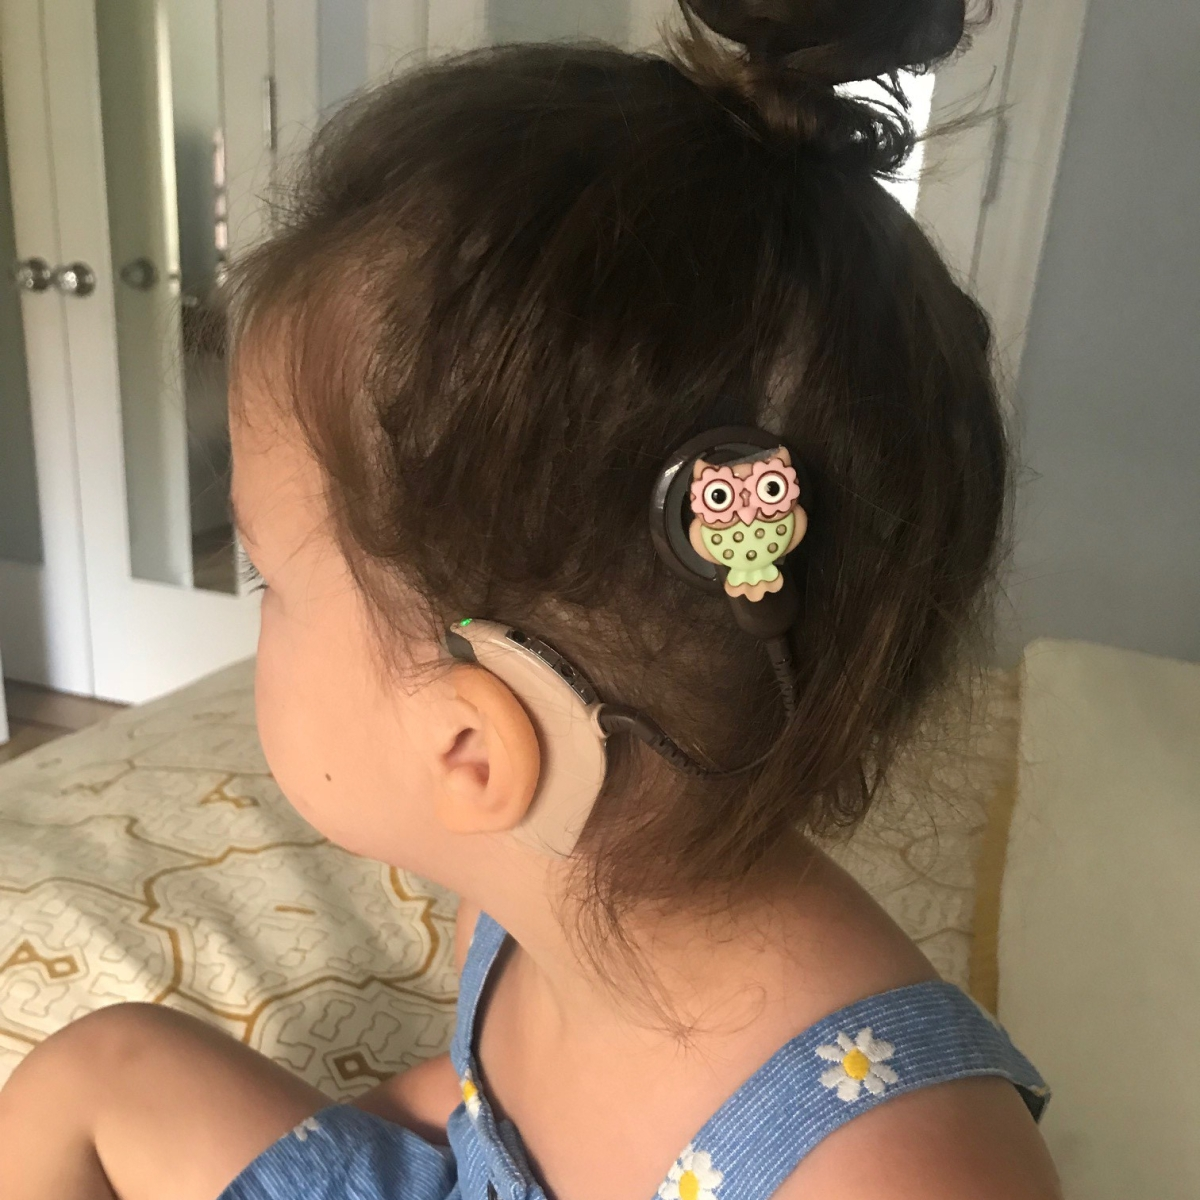 Sonya Loves Her New Cochlear Implant Charms!